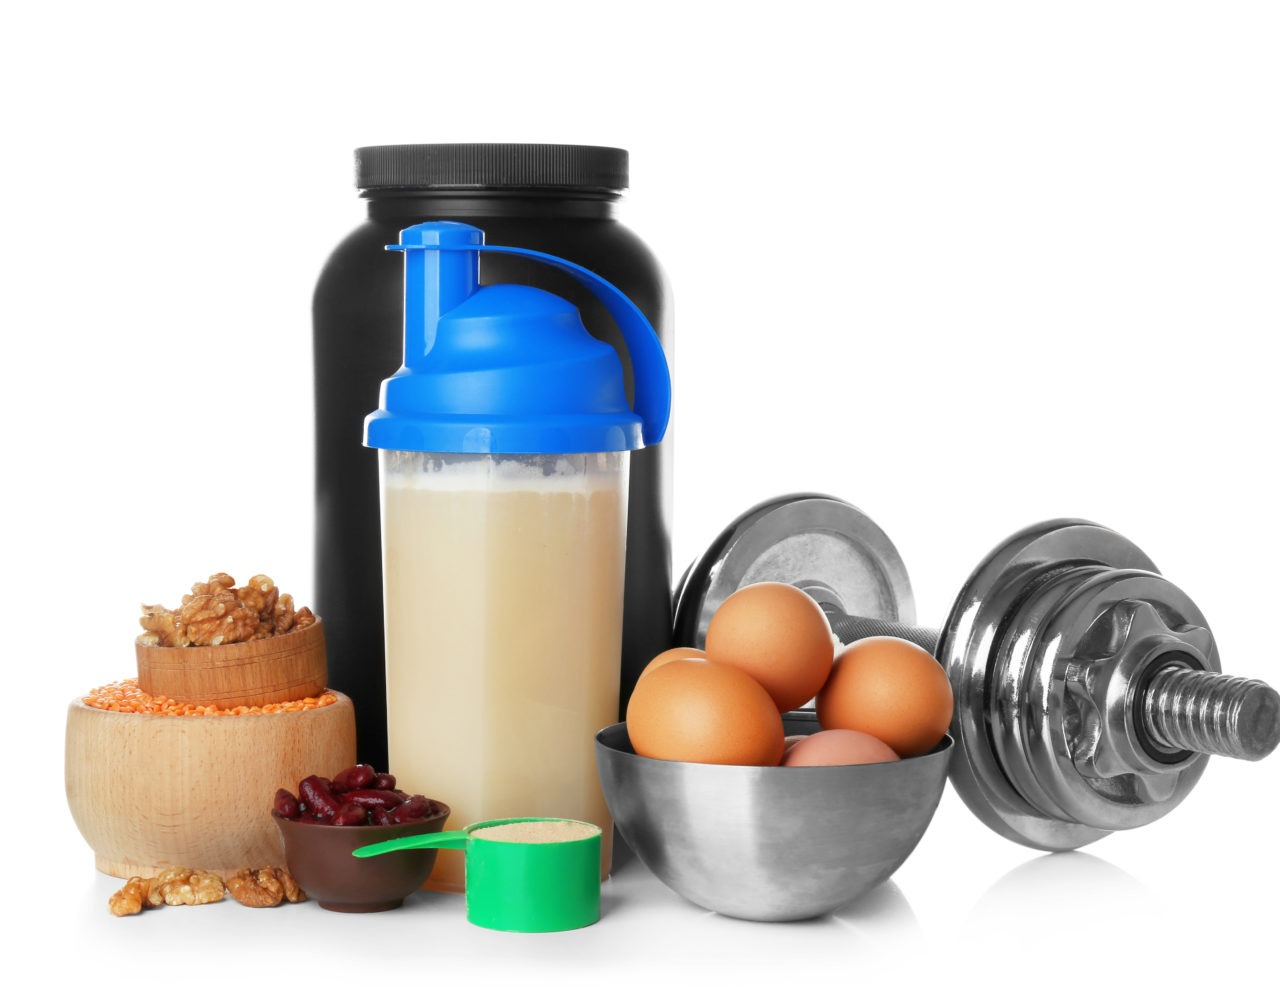 What's The Deal With Protein?